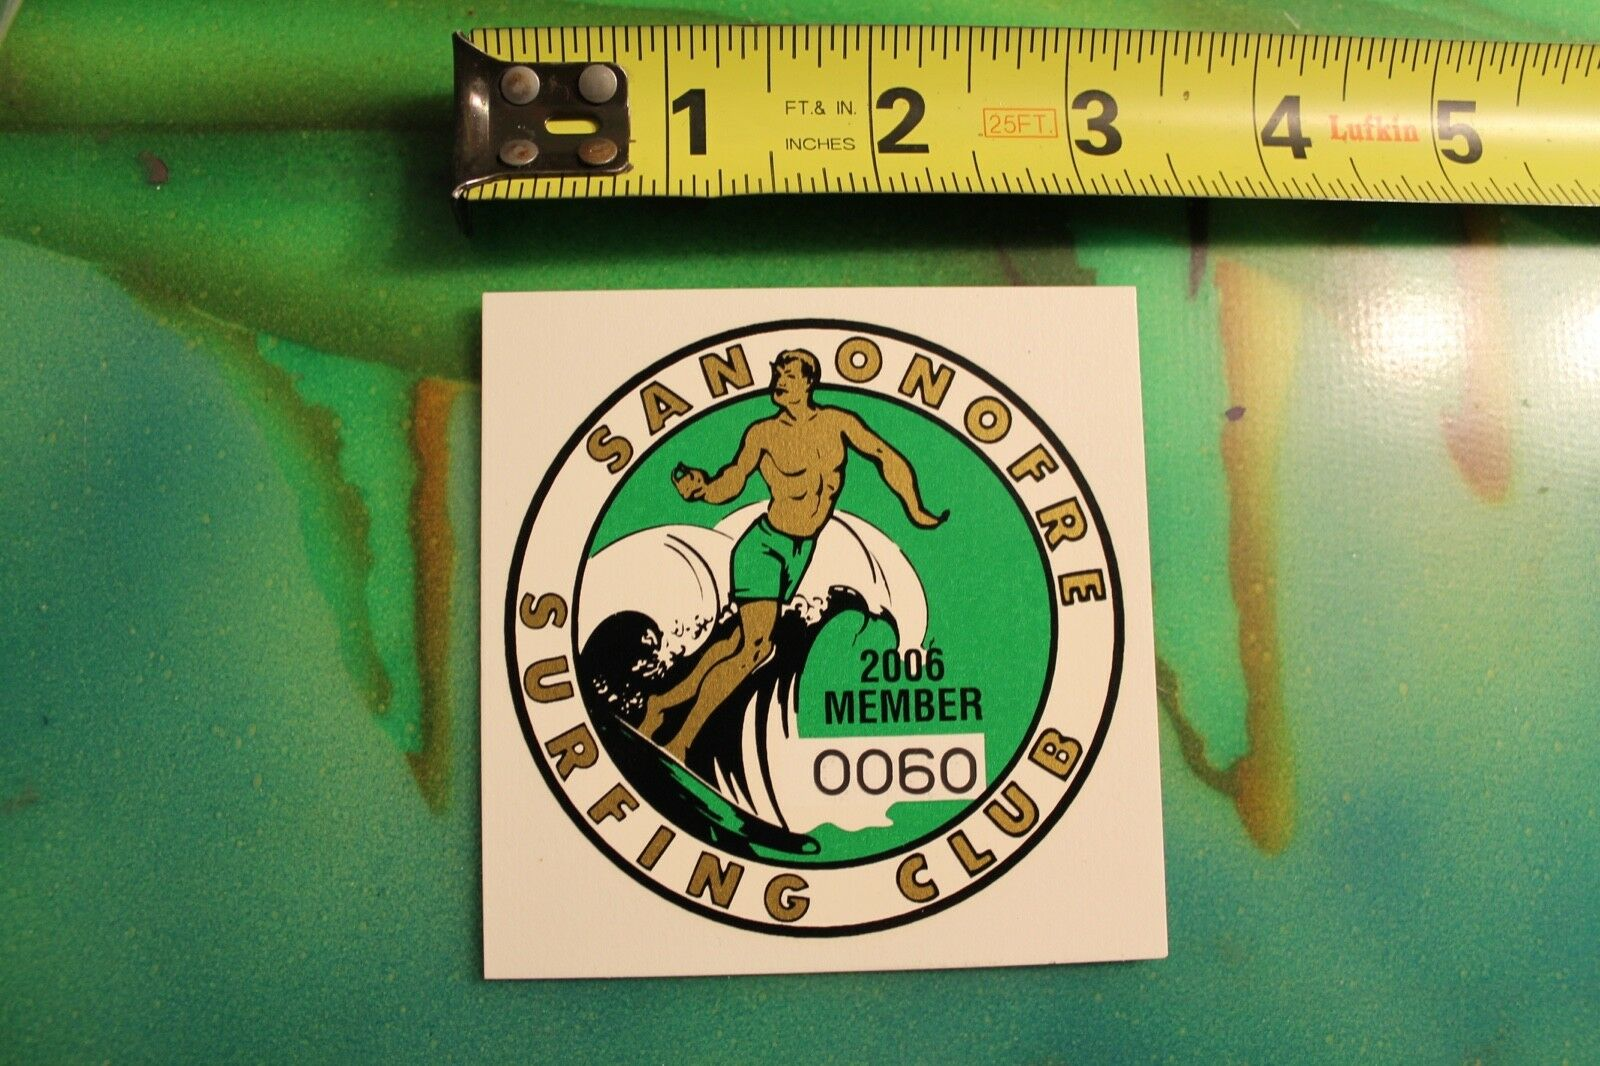 San Onofre Surfing Club Vintage 2006 Member Original Water-Slide Transfer DECAL